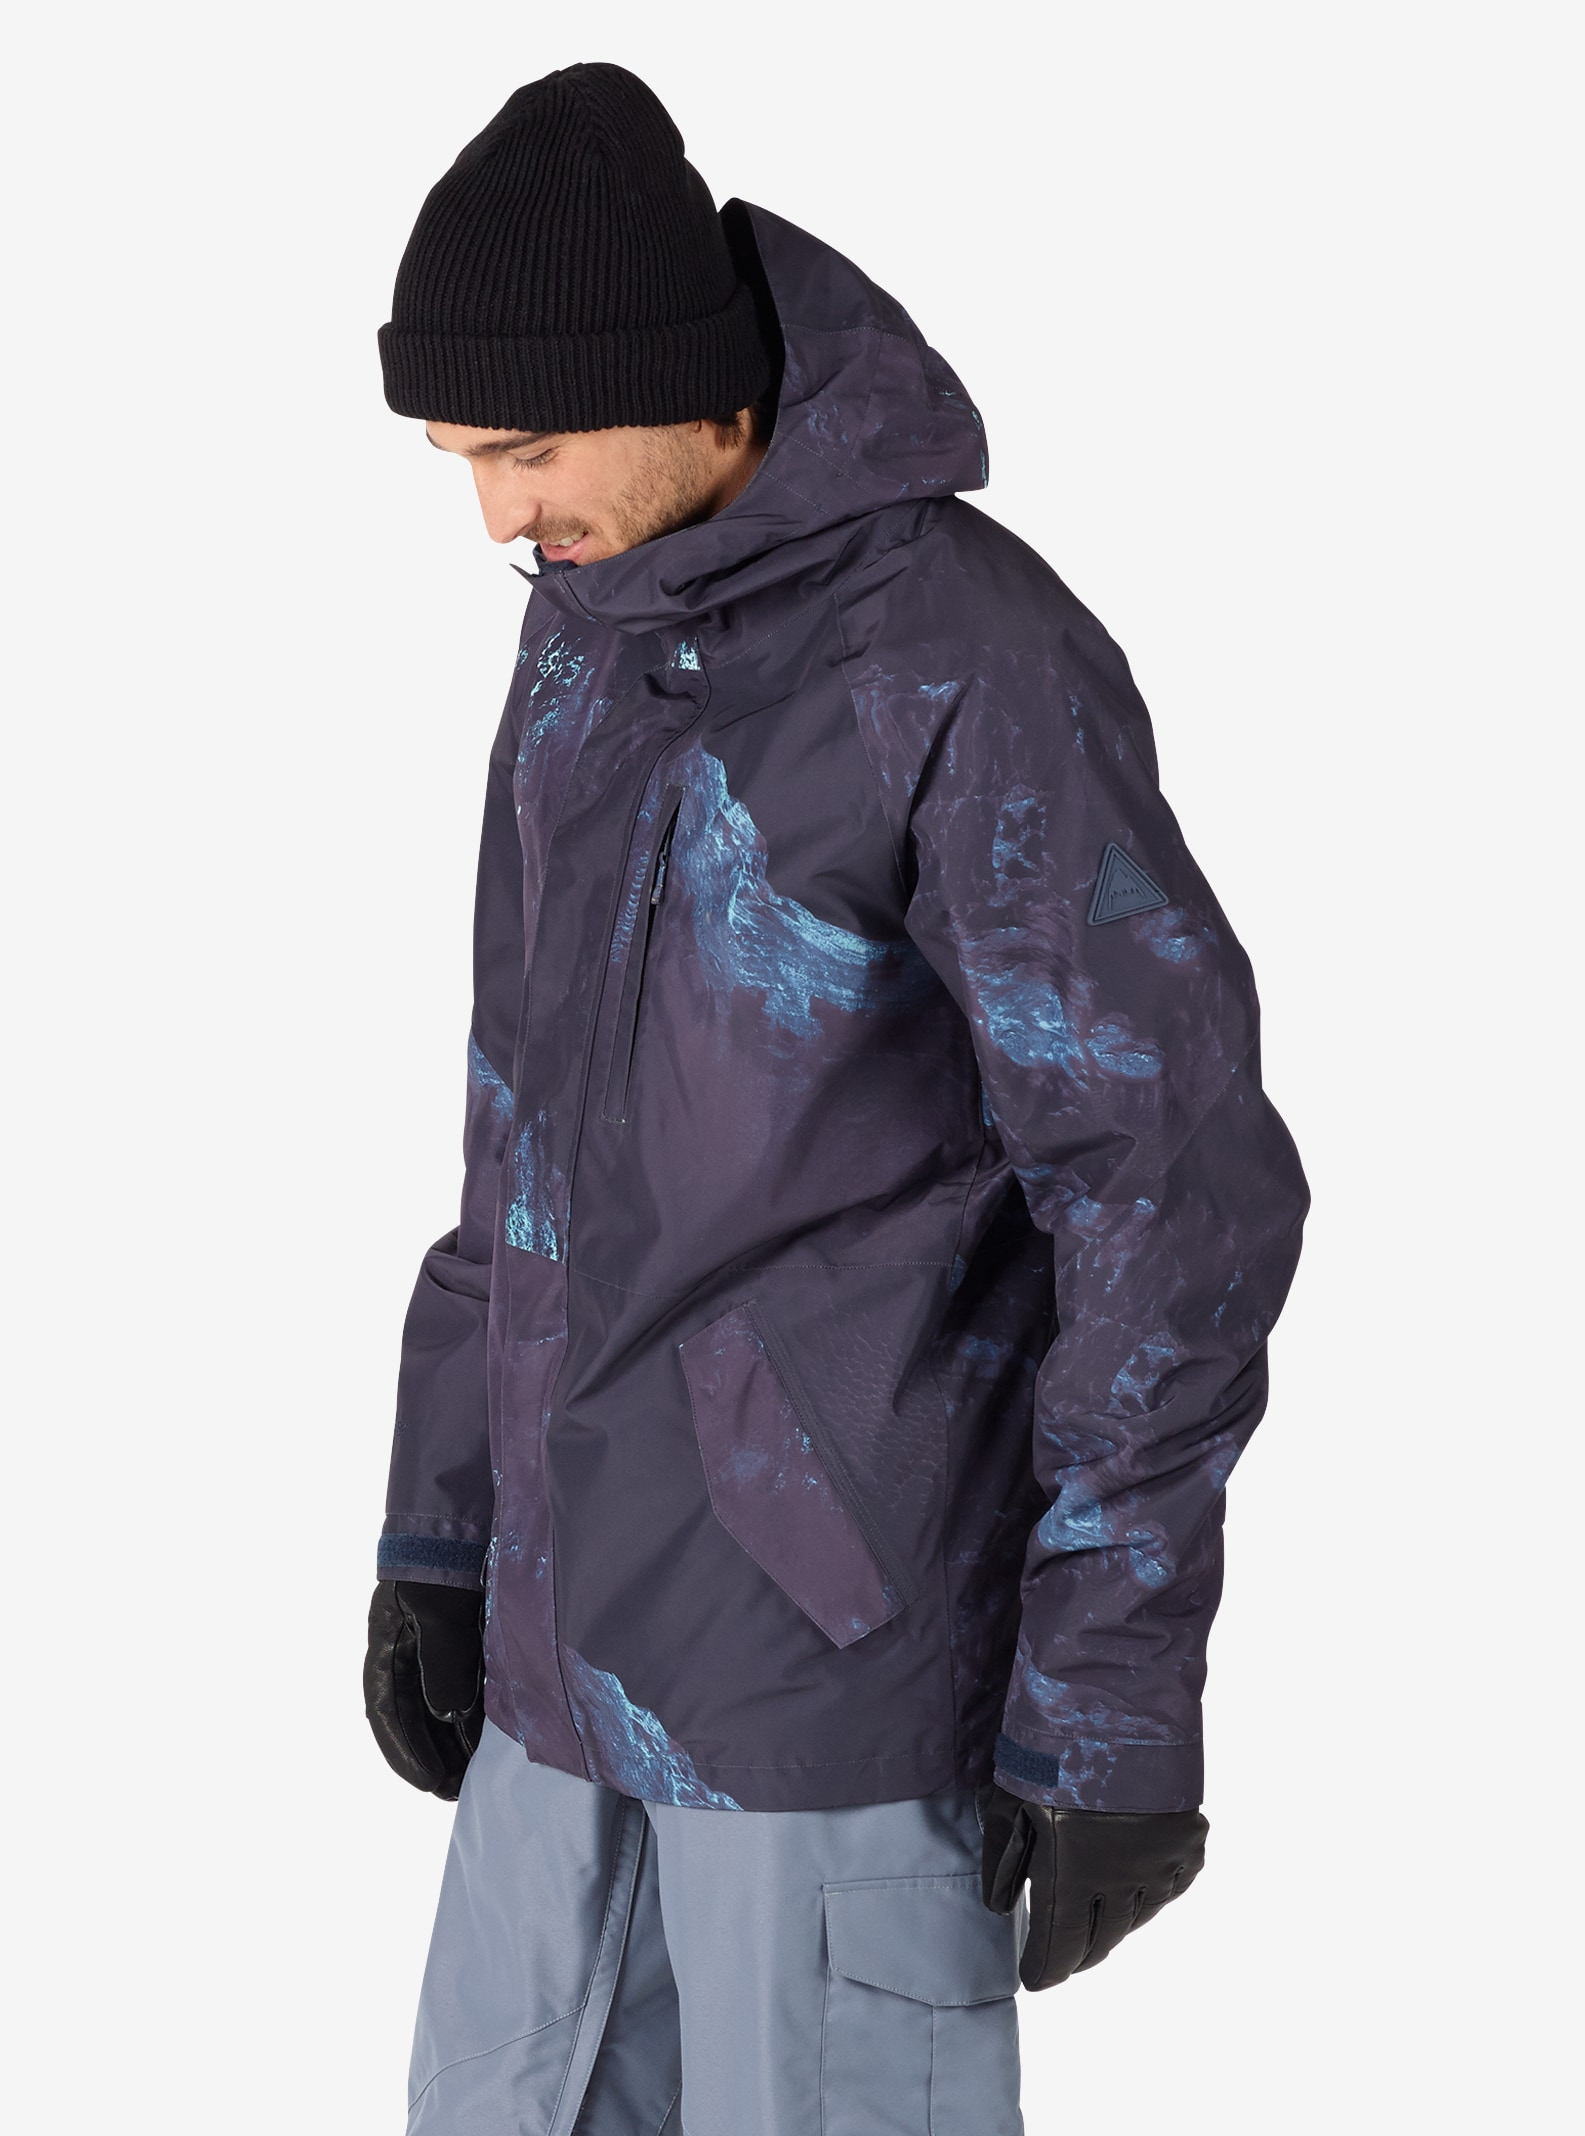 Men's Burton Radial Insulated Jacket shown in Nix Olympica